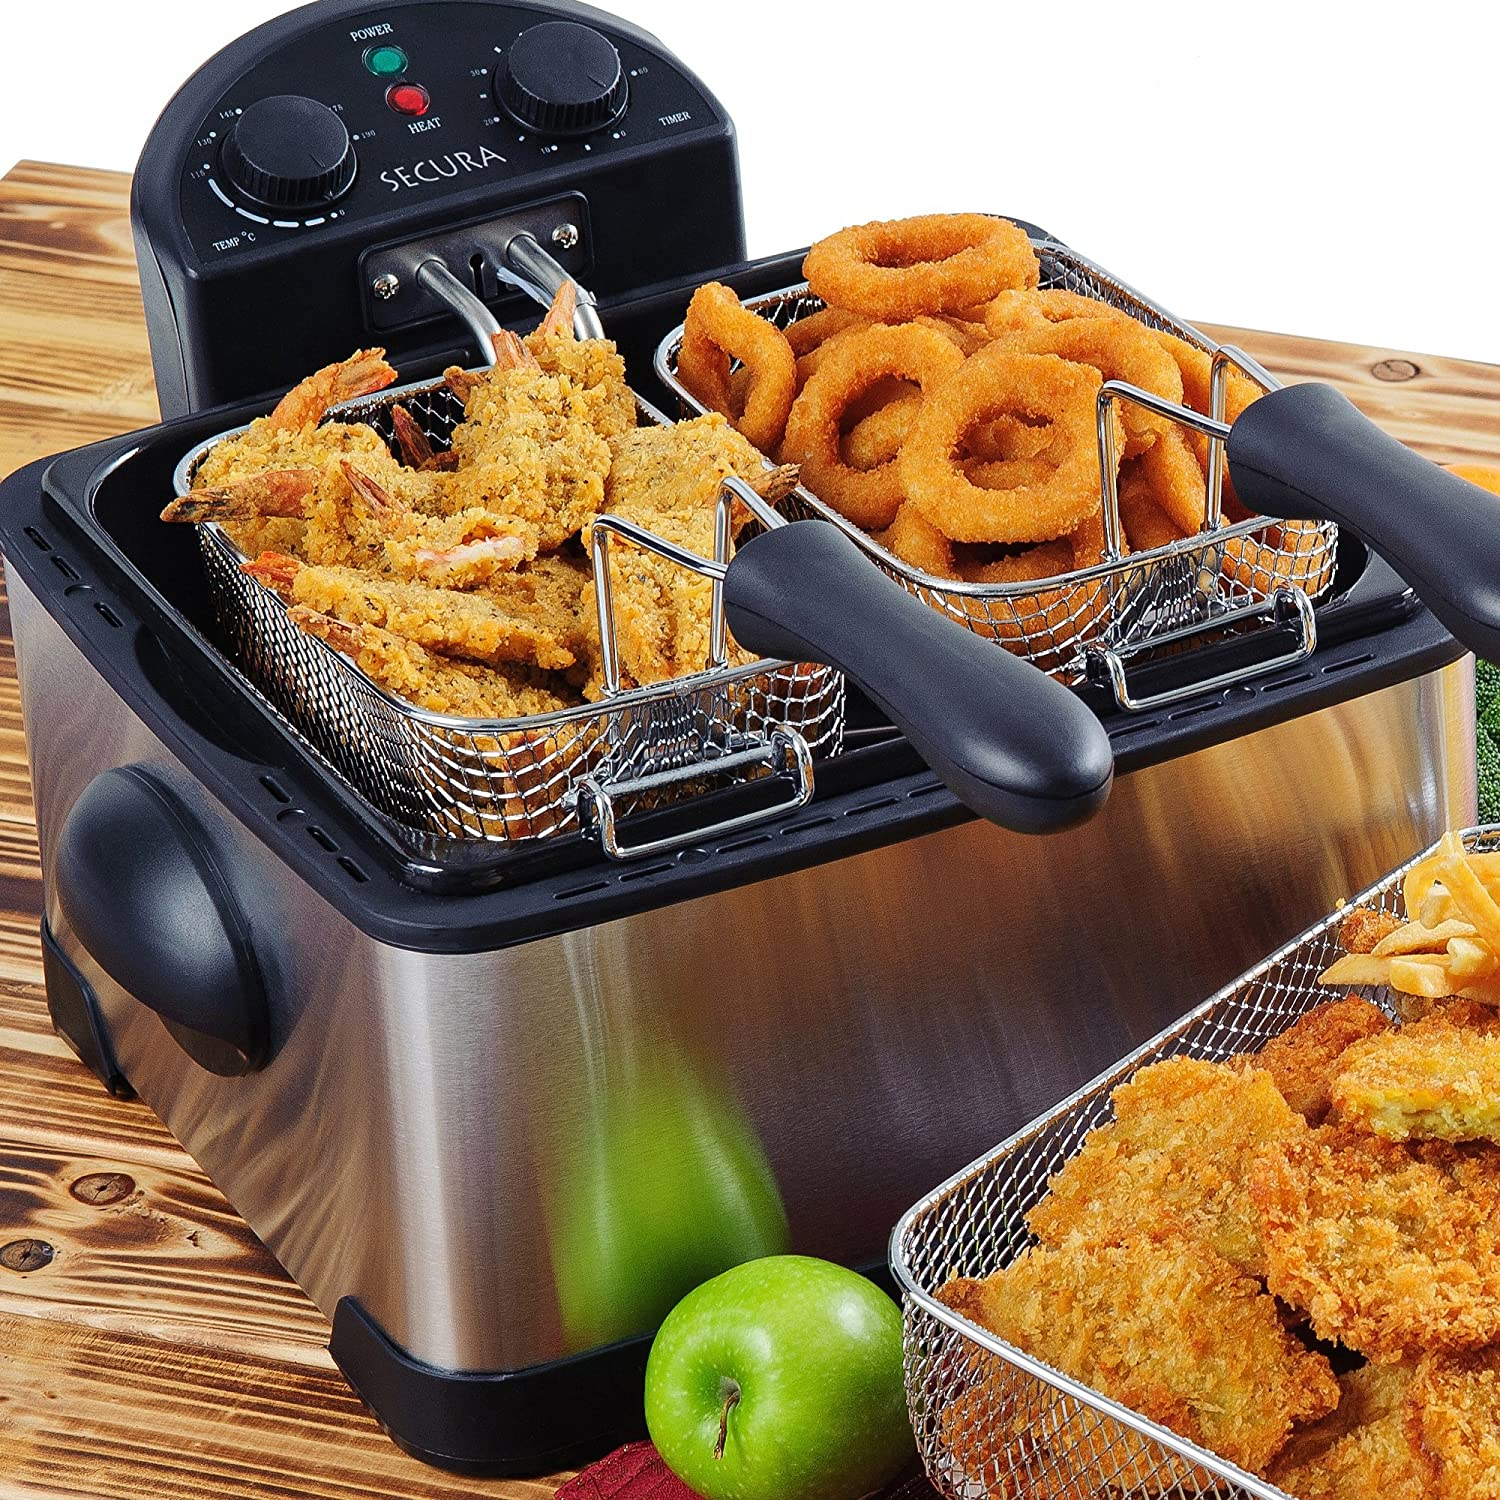 Hamilton Beach Professional Deep Fryer with Cool Touch, 2-Liter Oil Capacity